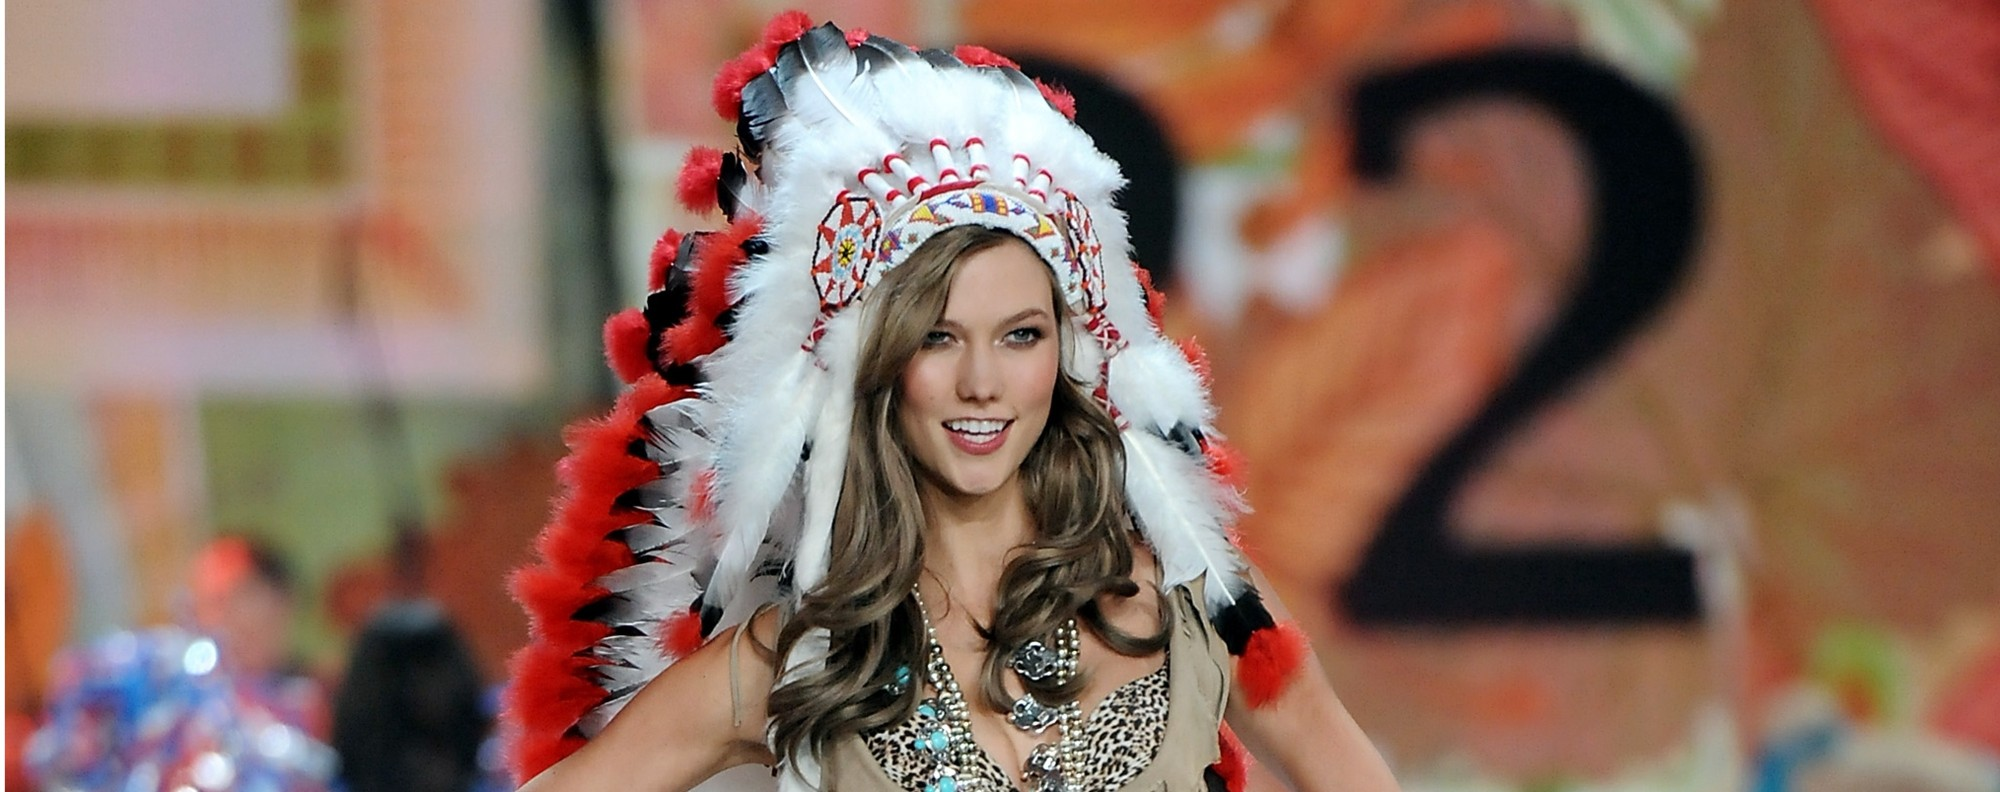 Karlie Kloss wearing an native headdress during the 2012 Victoria's Secret Fashion Show in New York. Photo: AP